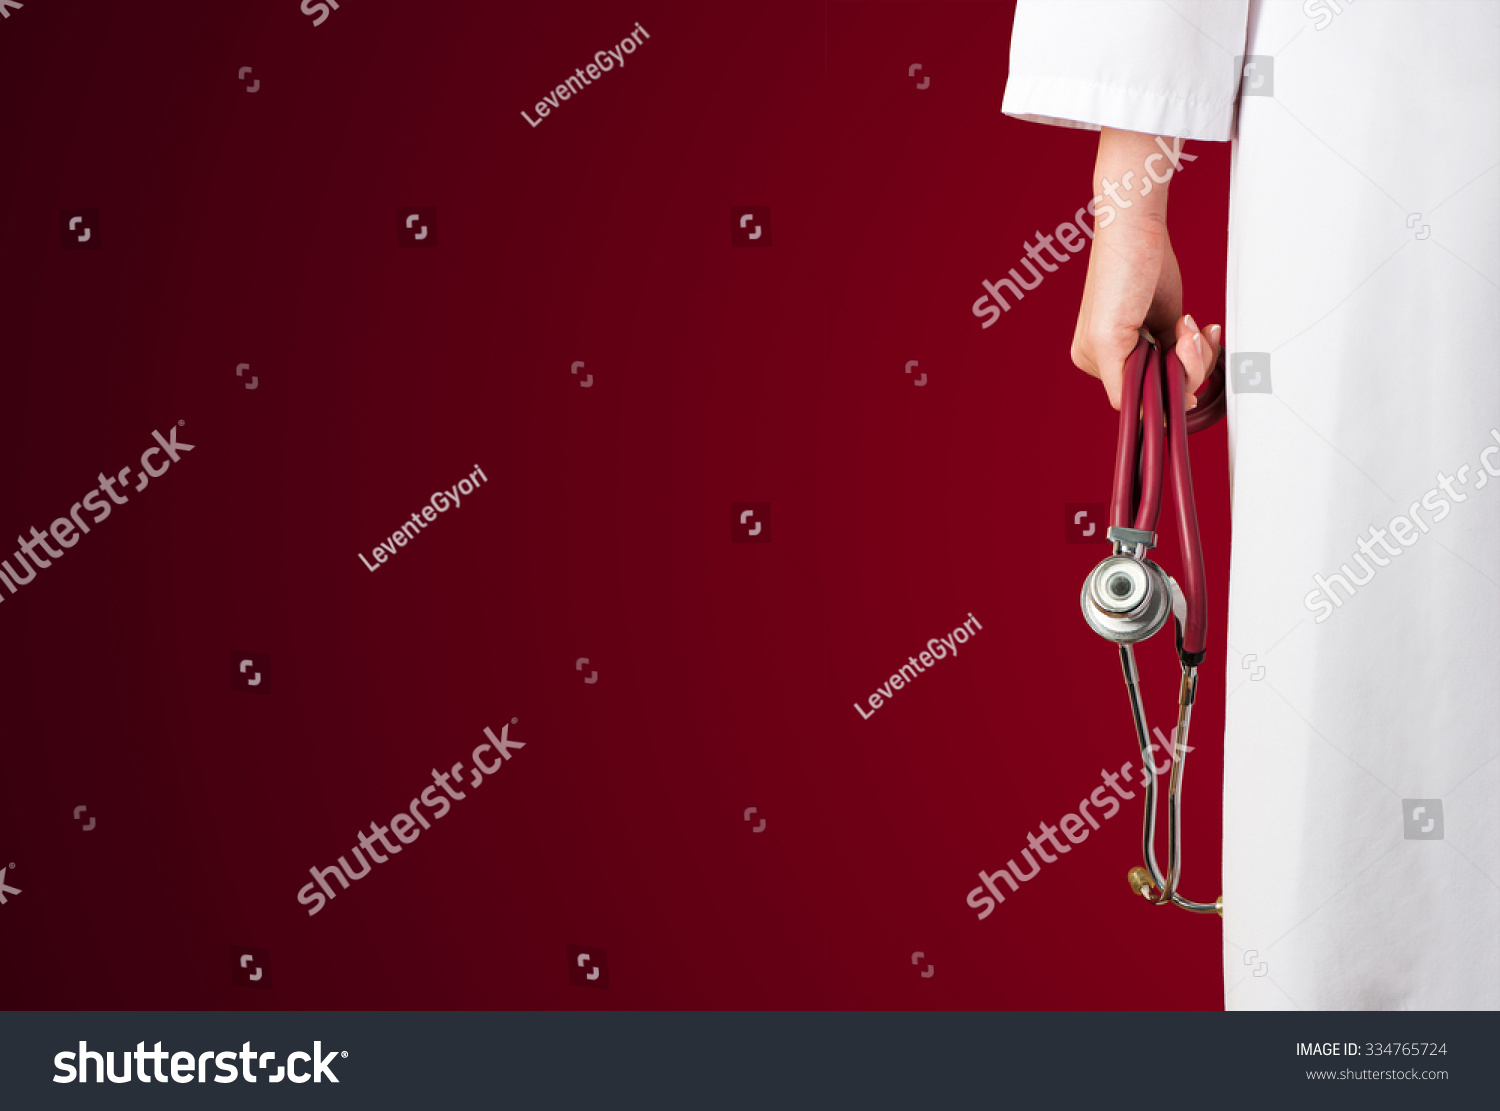 red medical background - photo #5